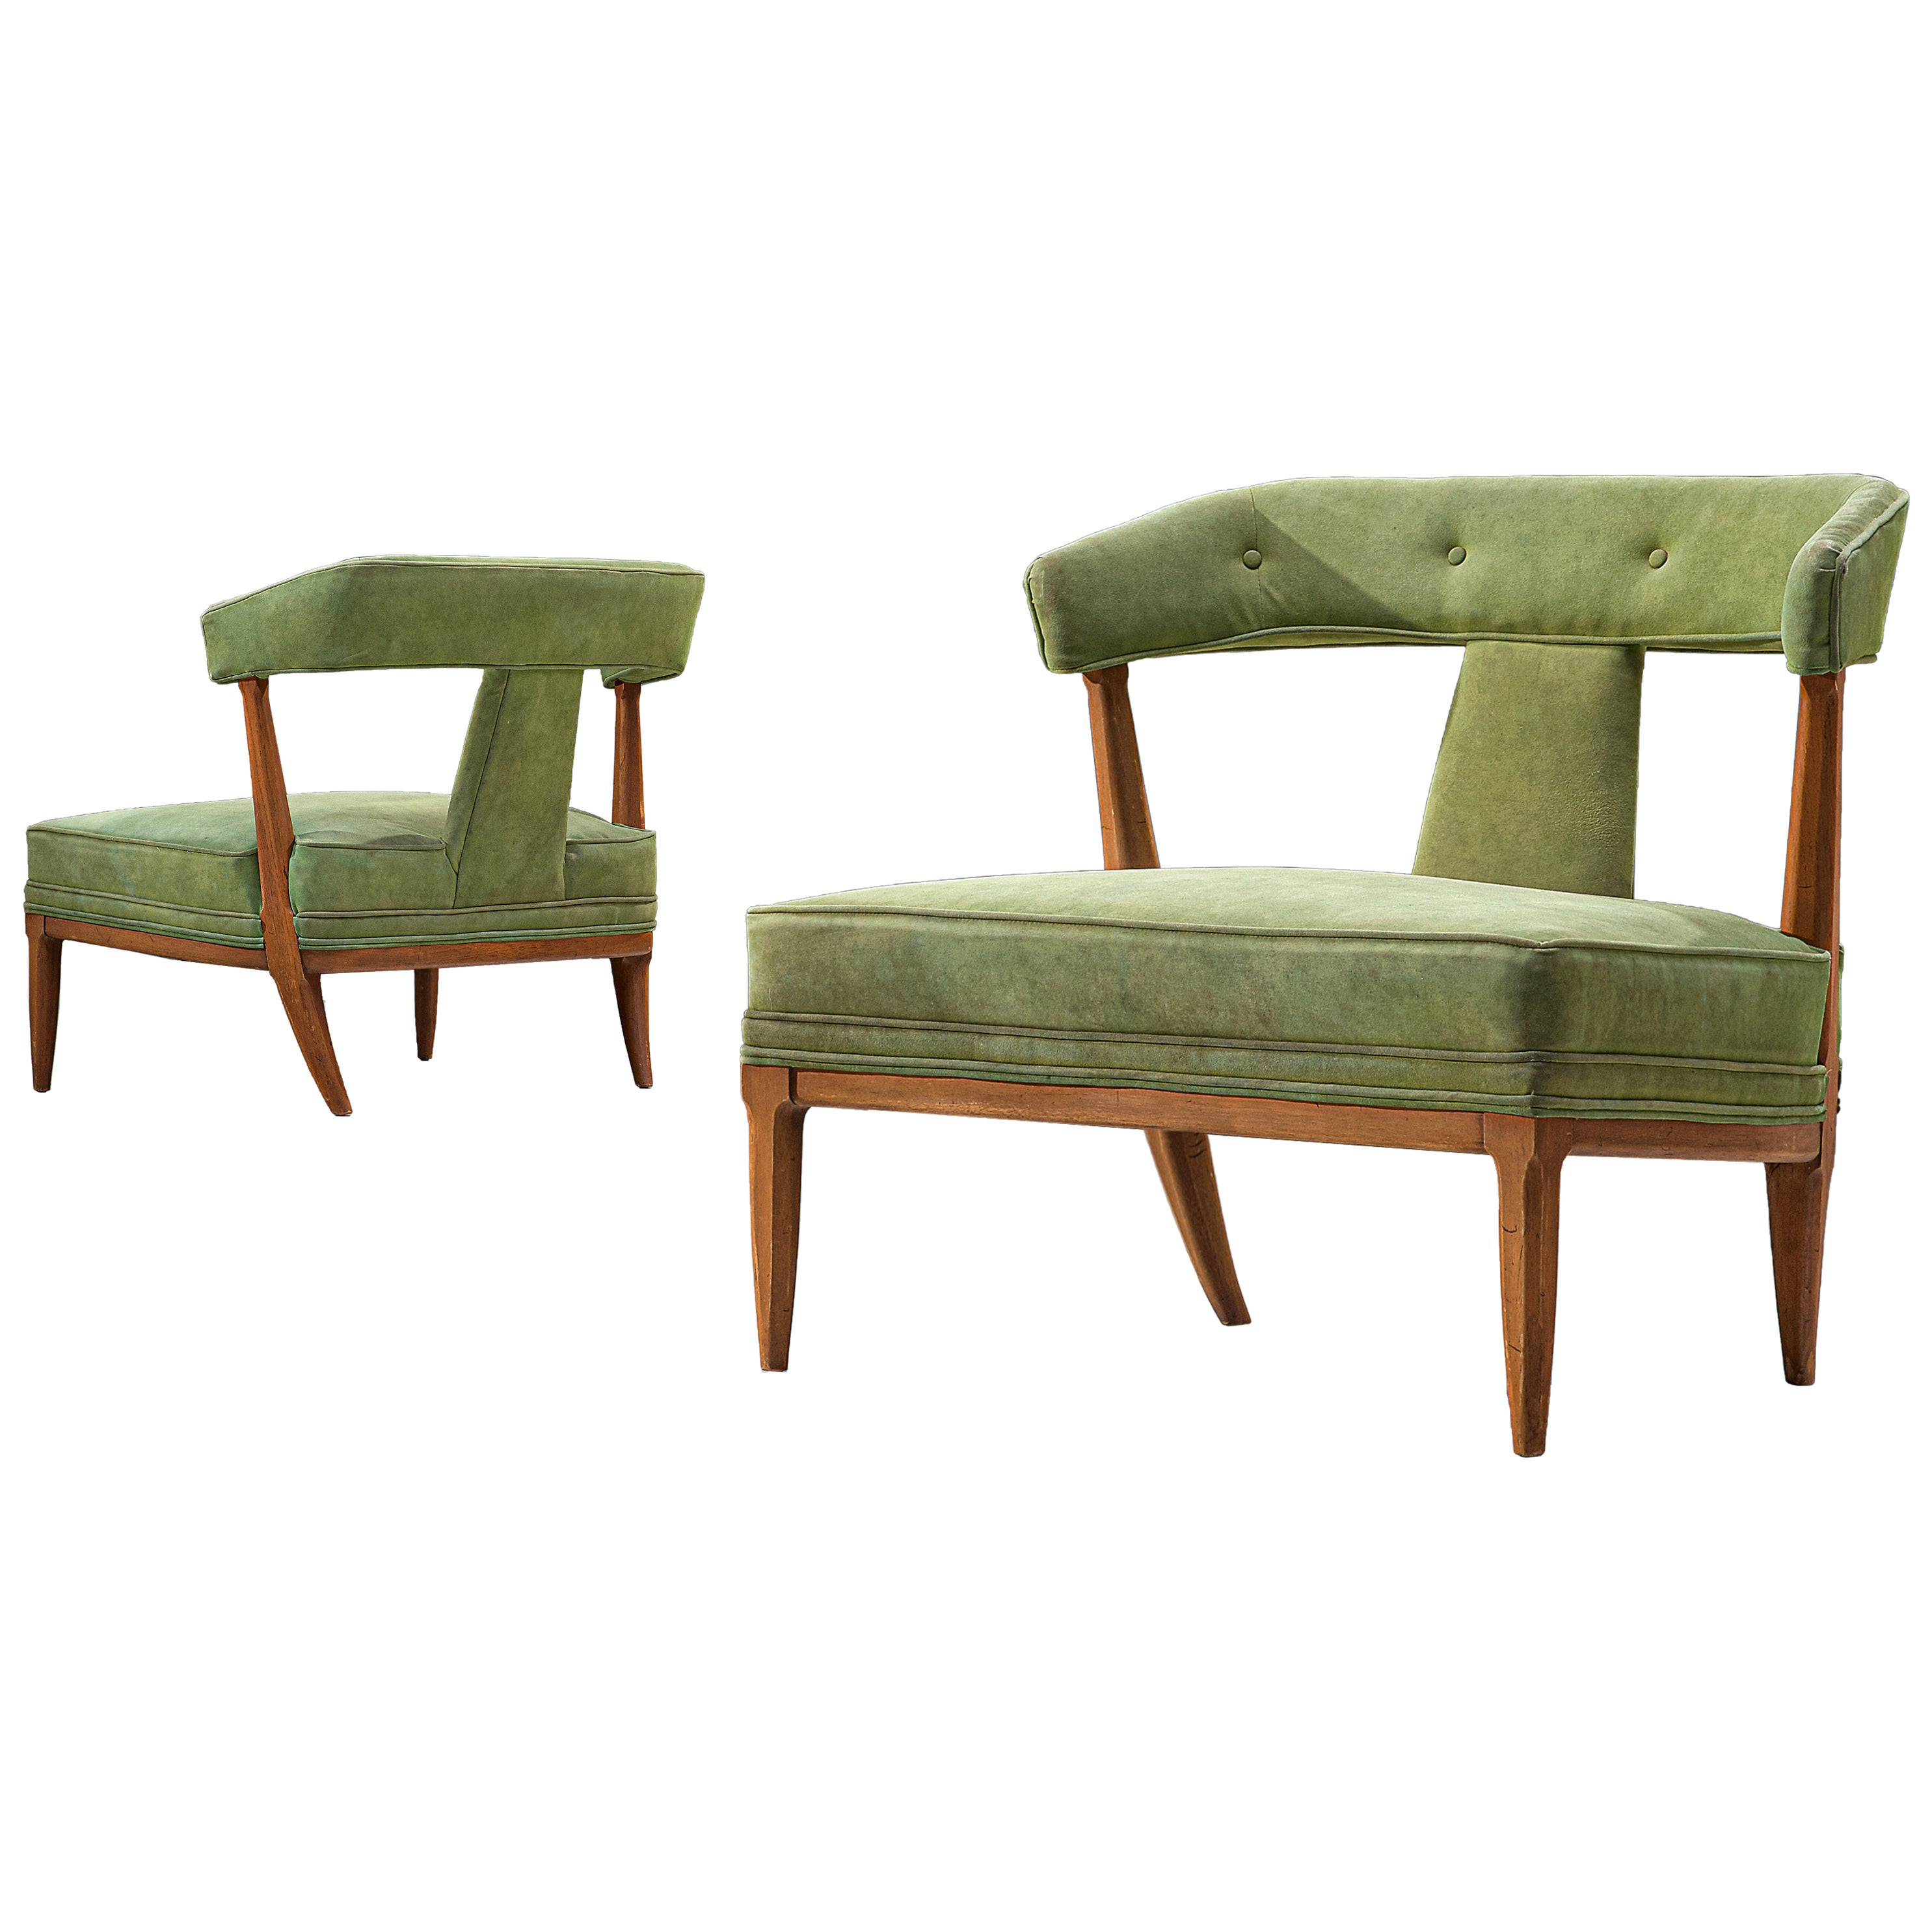 Pair of Wide American Lounge Chairs in Beech and Green Upholstery